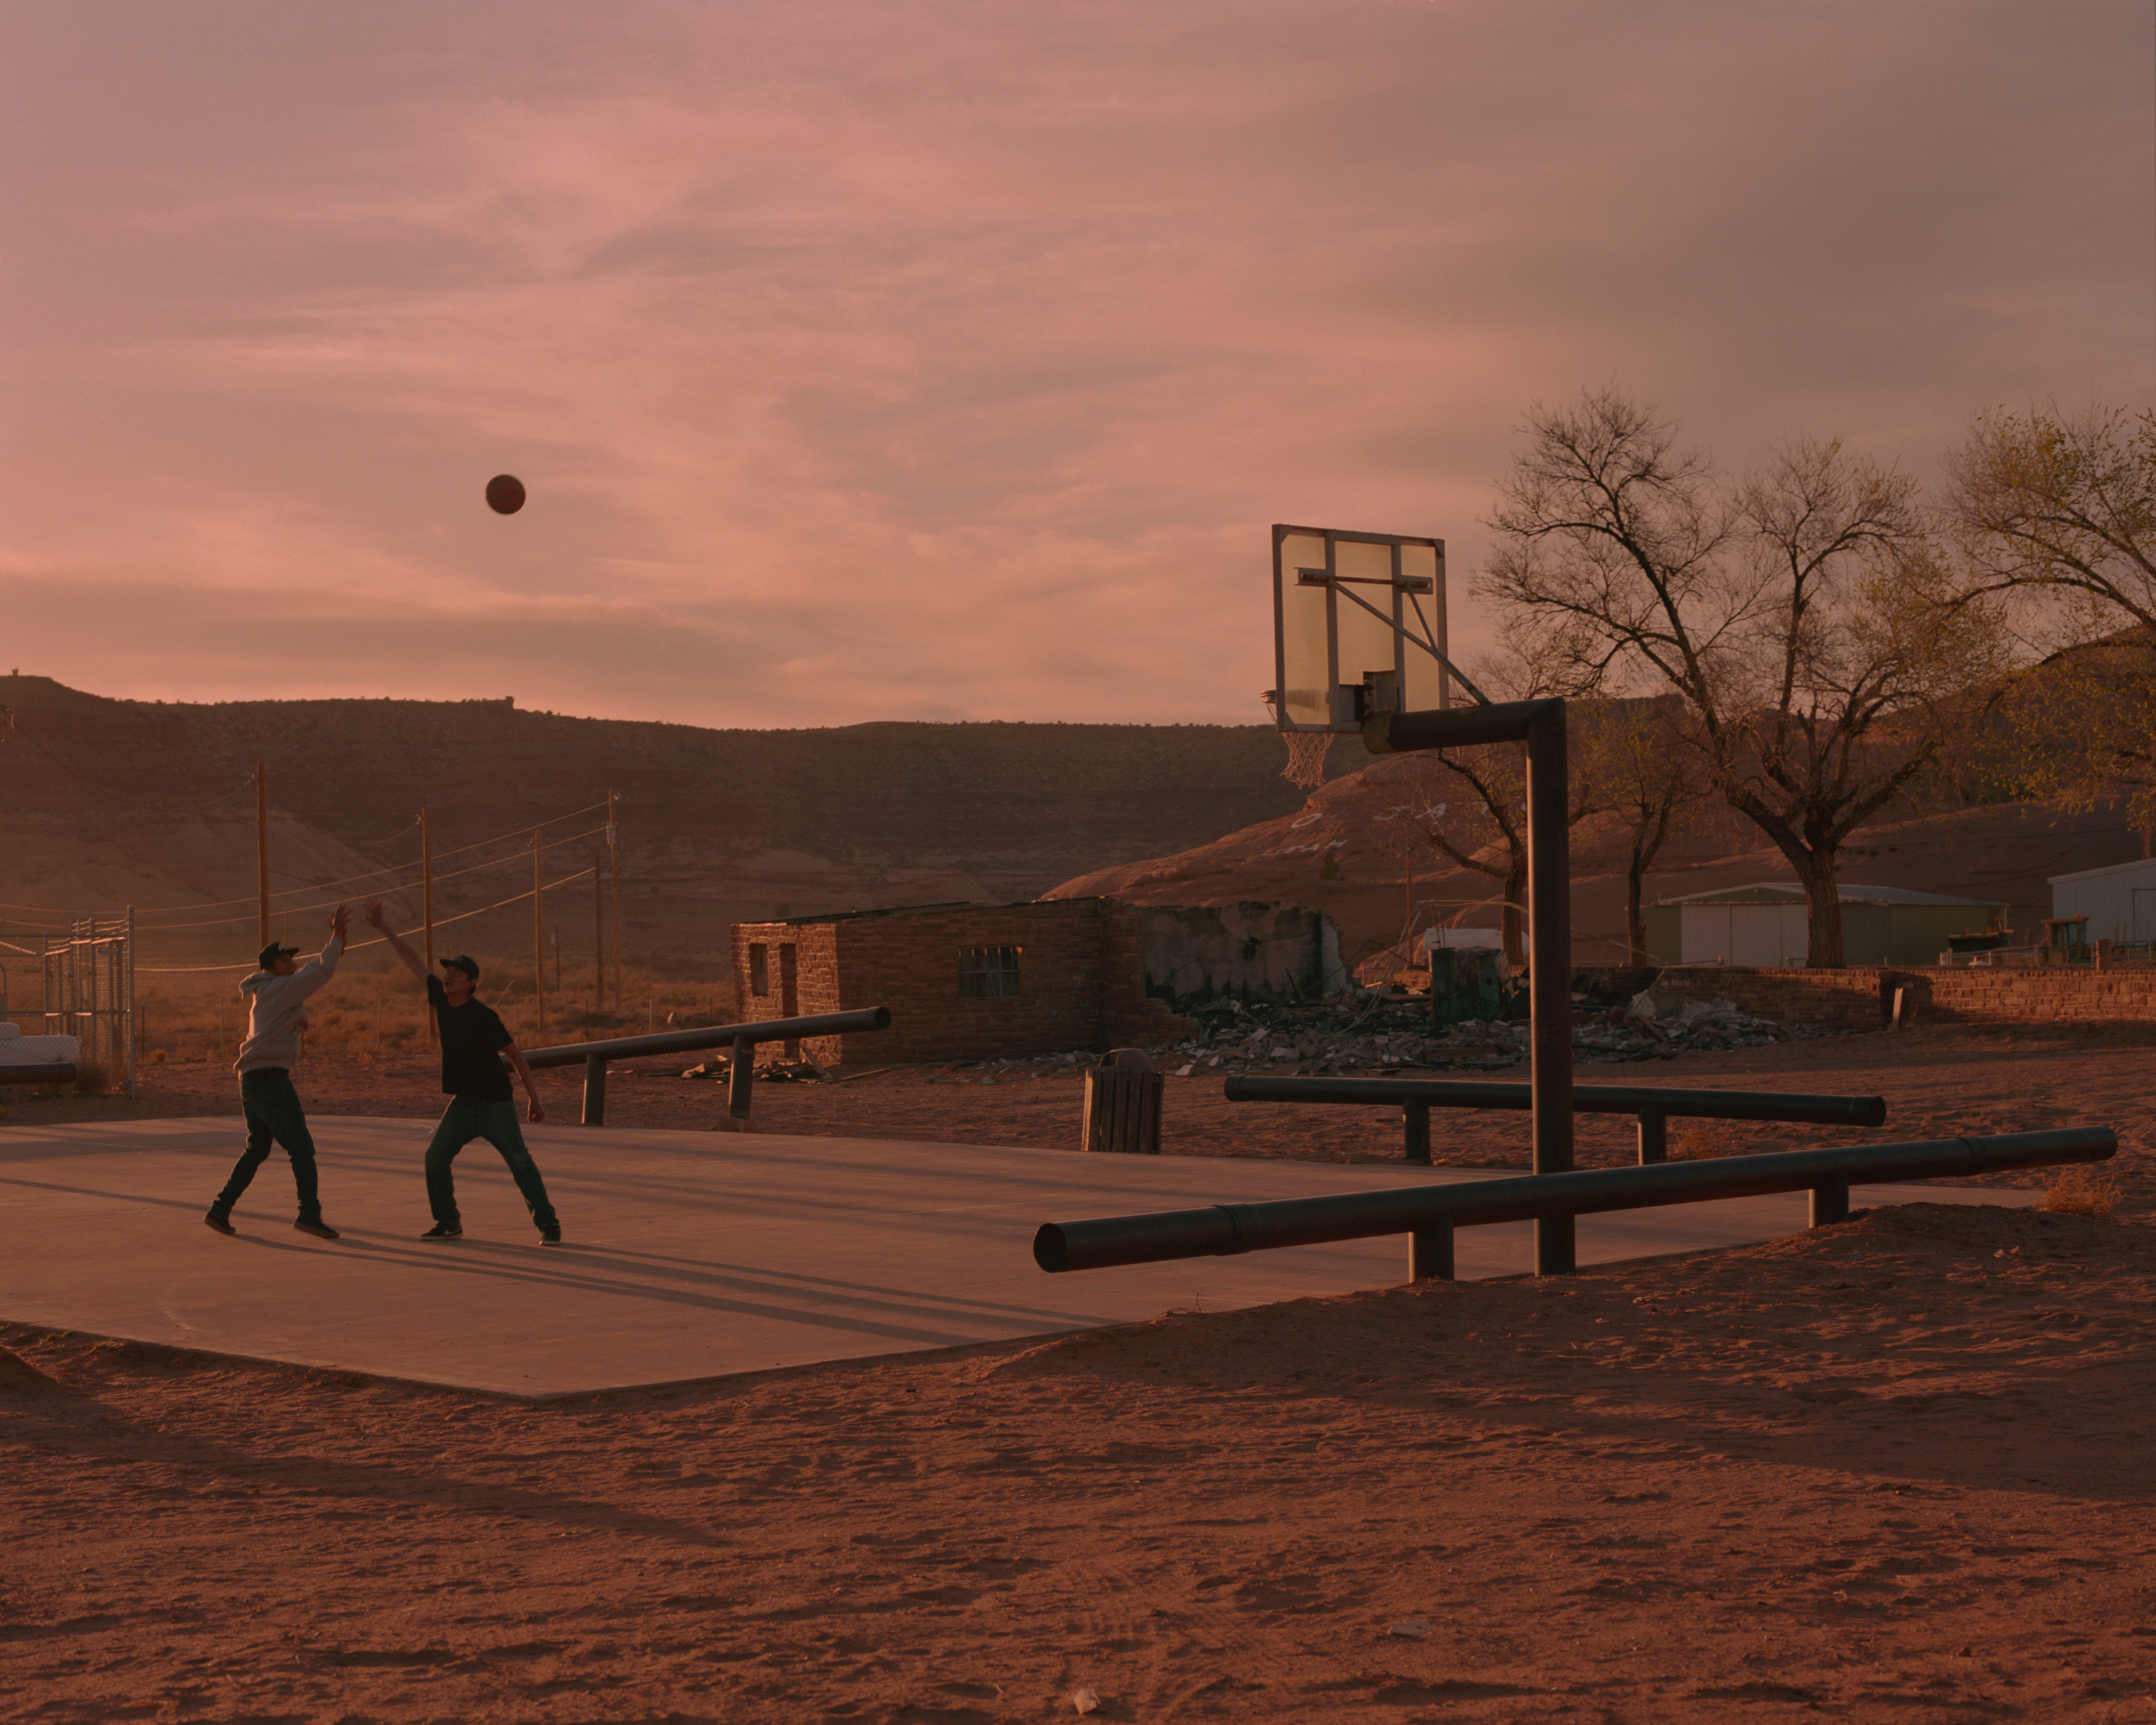 Teenage brothers Deion Salazar and Syrus Yazzieplay basketball in Oljato, Utah - a few miles from Monument Valley. Oljato was a major source for uranium mining in the 1940's and 50's causing serious health concerns for many of its residents.